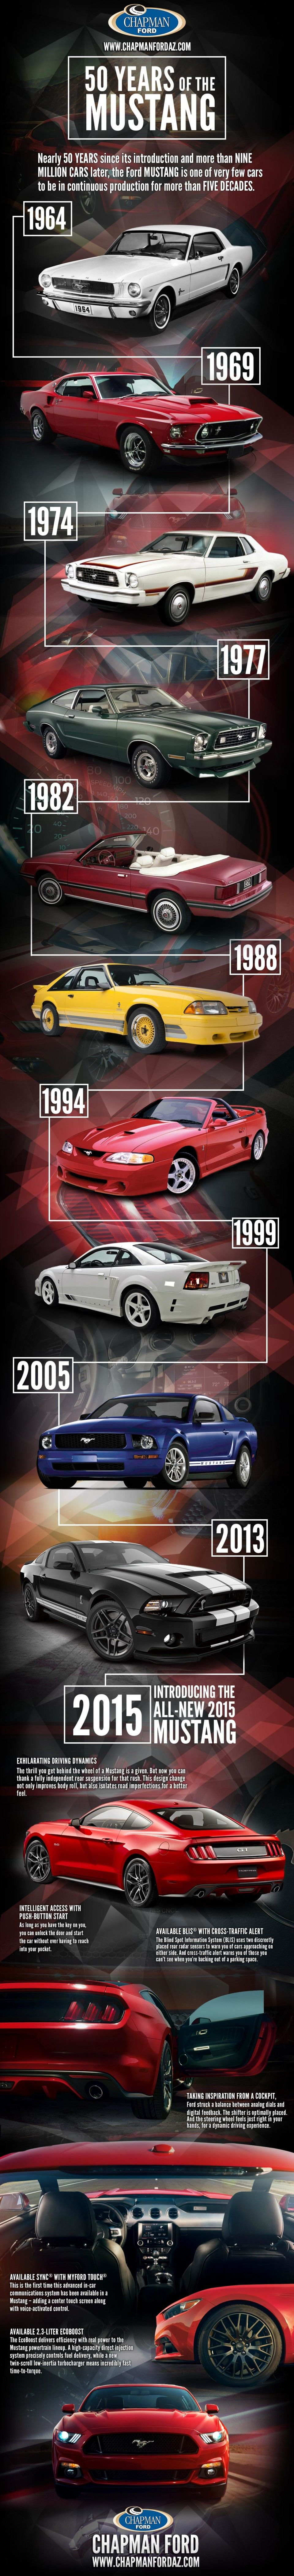 Cars Tipsographic Page 2 Dream Cars Mustang Mustang Cars